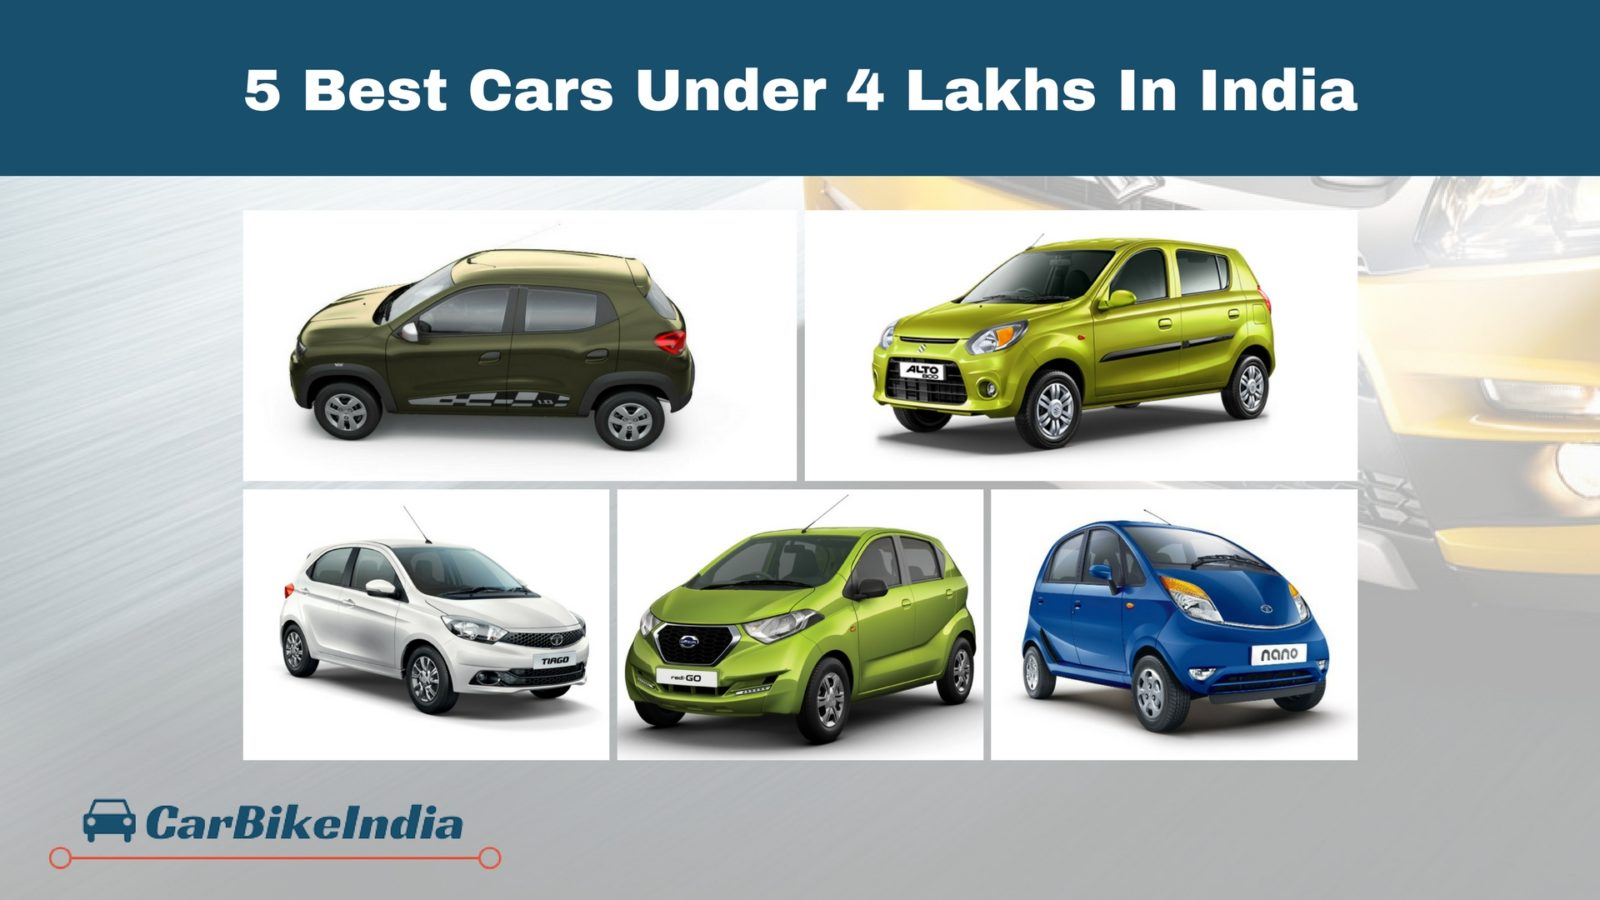 5 Best Cars Under 4 Lakhs In India 2018